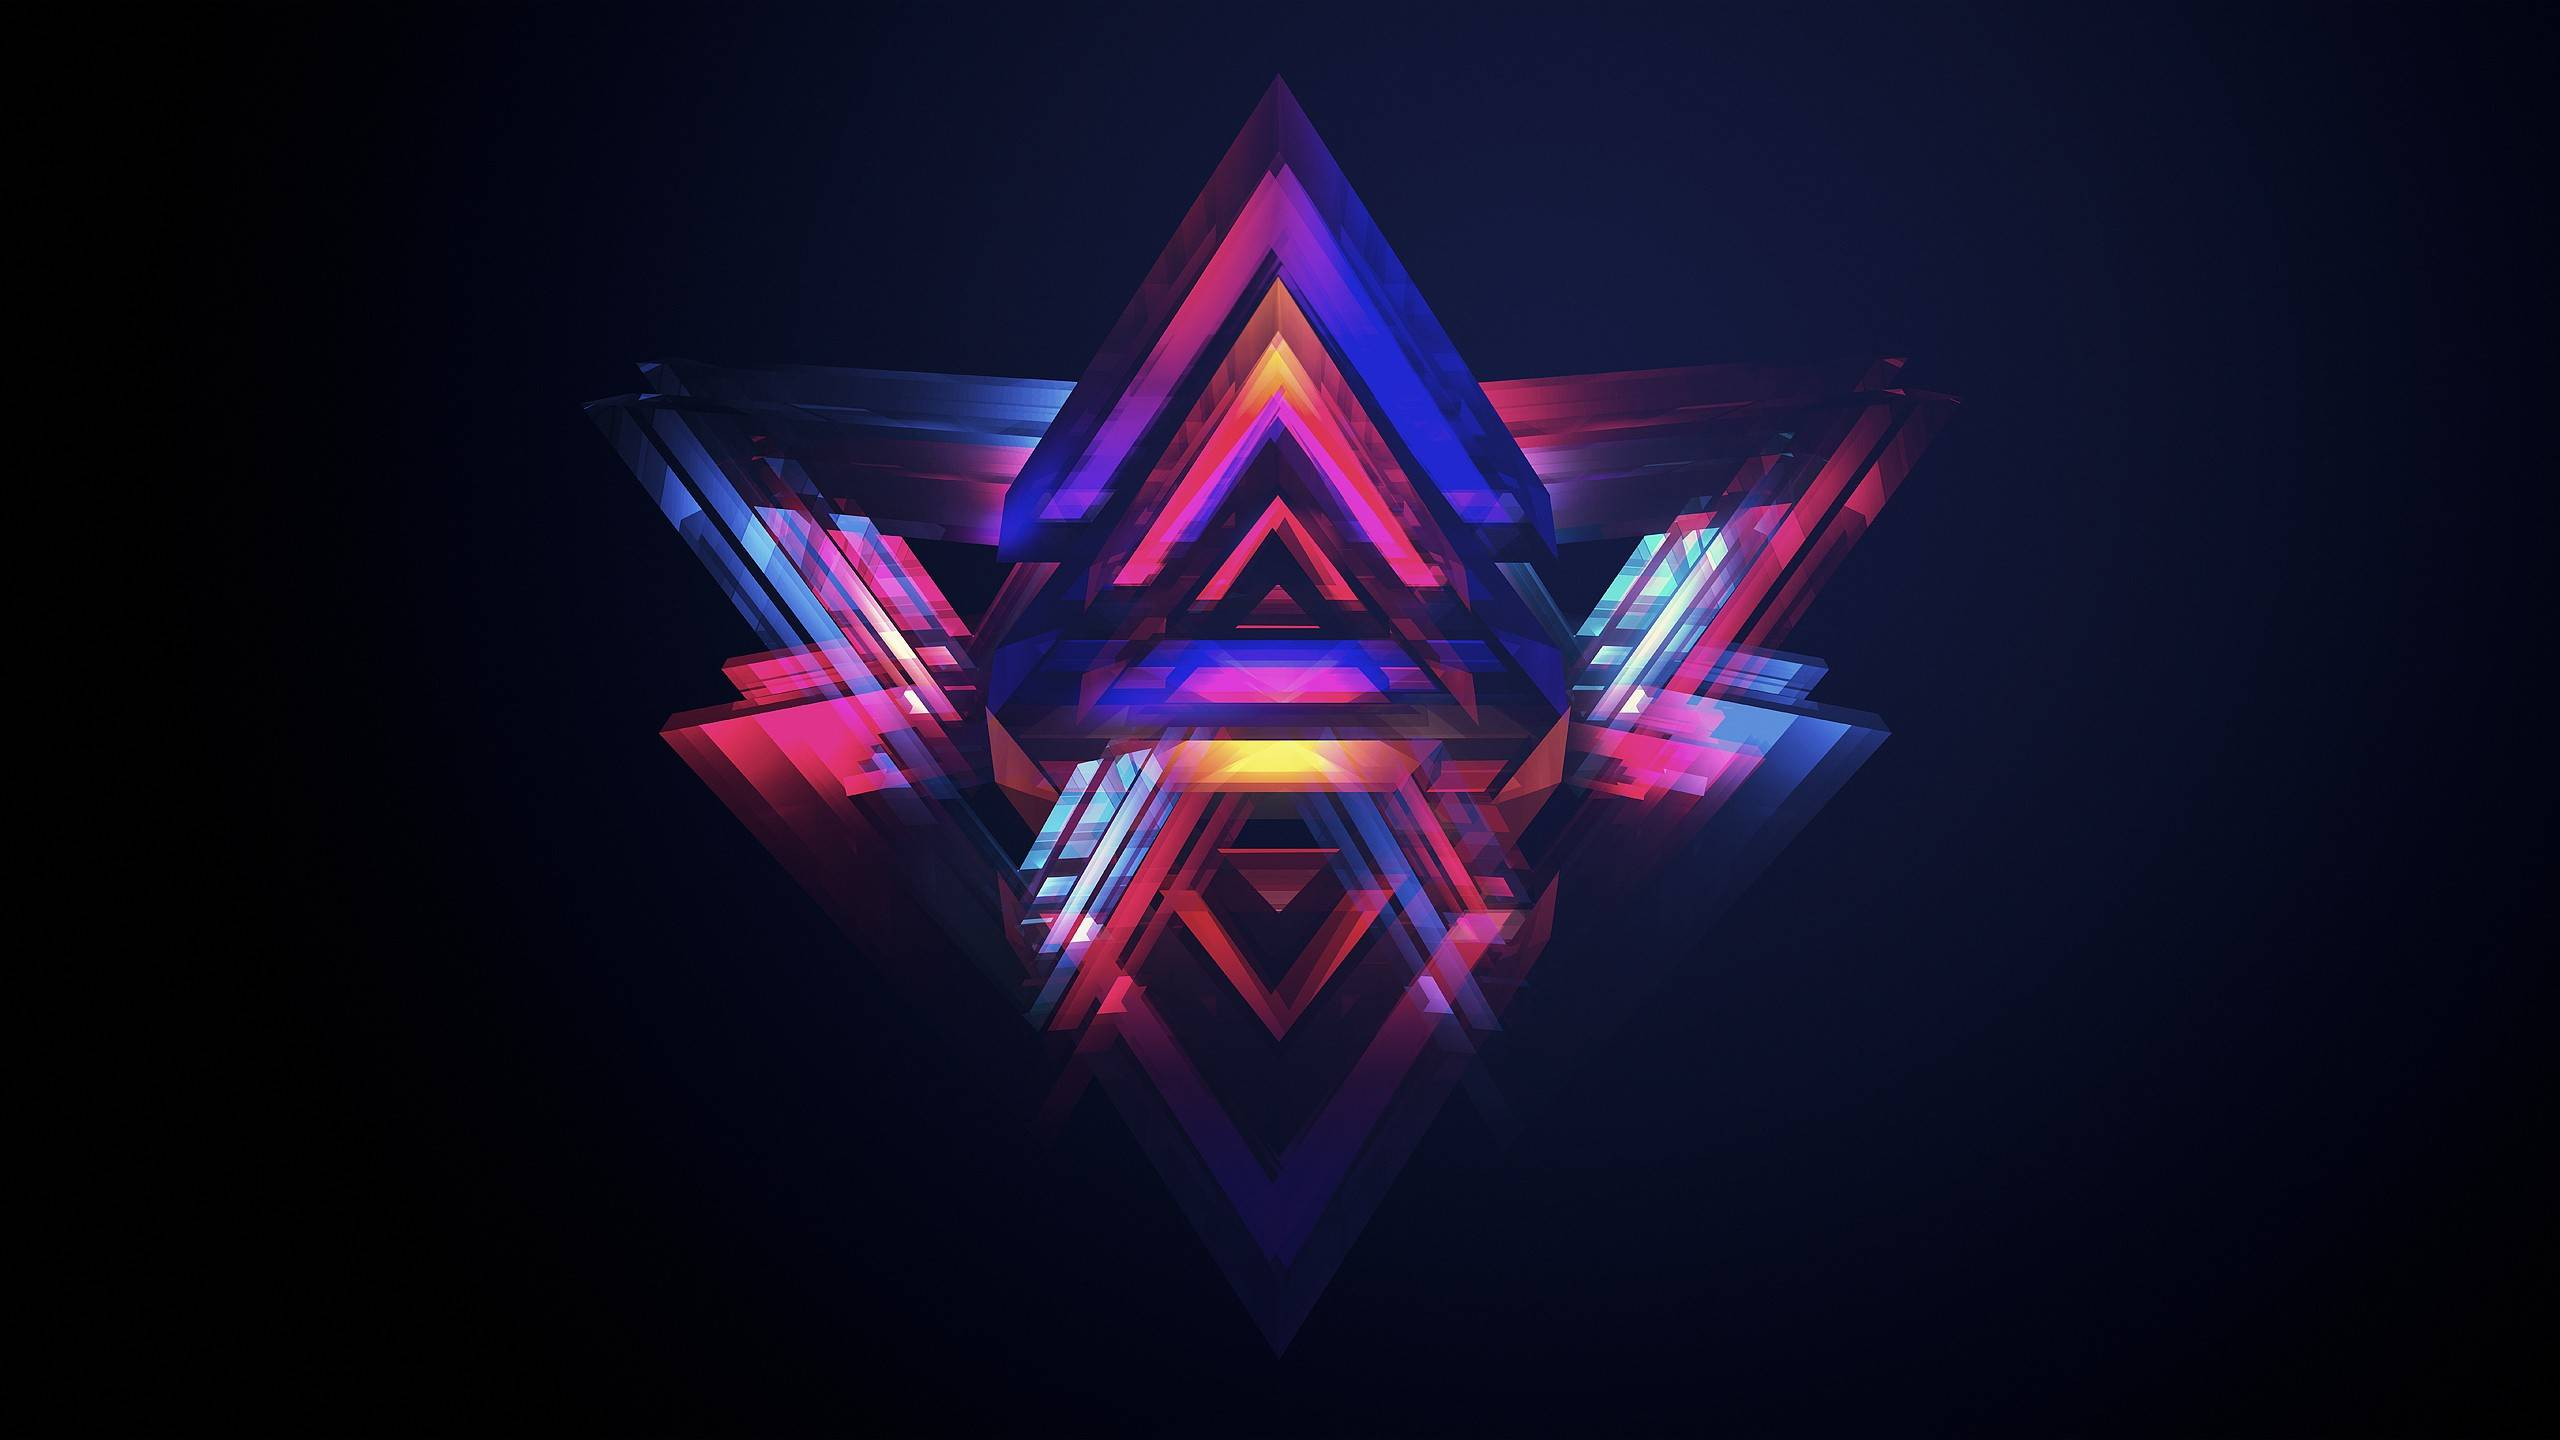 Abstract Vector 25601440 Wallpaper 2230798 2560x1440